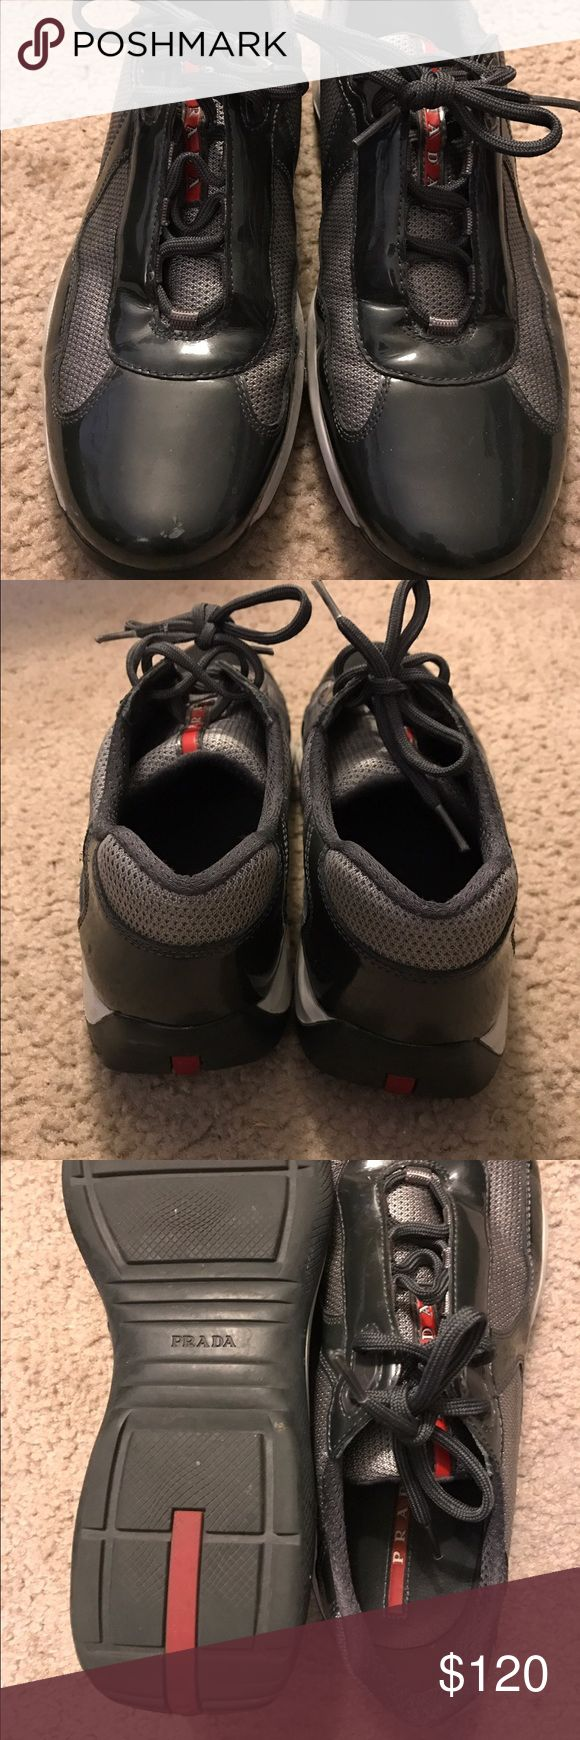 Men's Prada Sneakers sz 9 In amazing shape at a price you cannot beat! Very fashionable Prada sneakers for men! Quick shipping for the holiday! Prada Shoes Sneakers